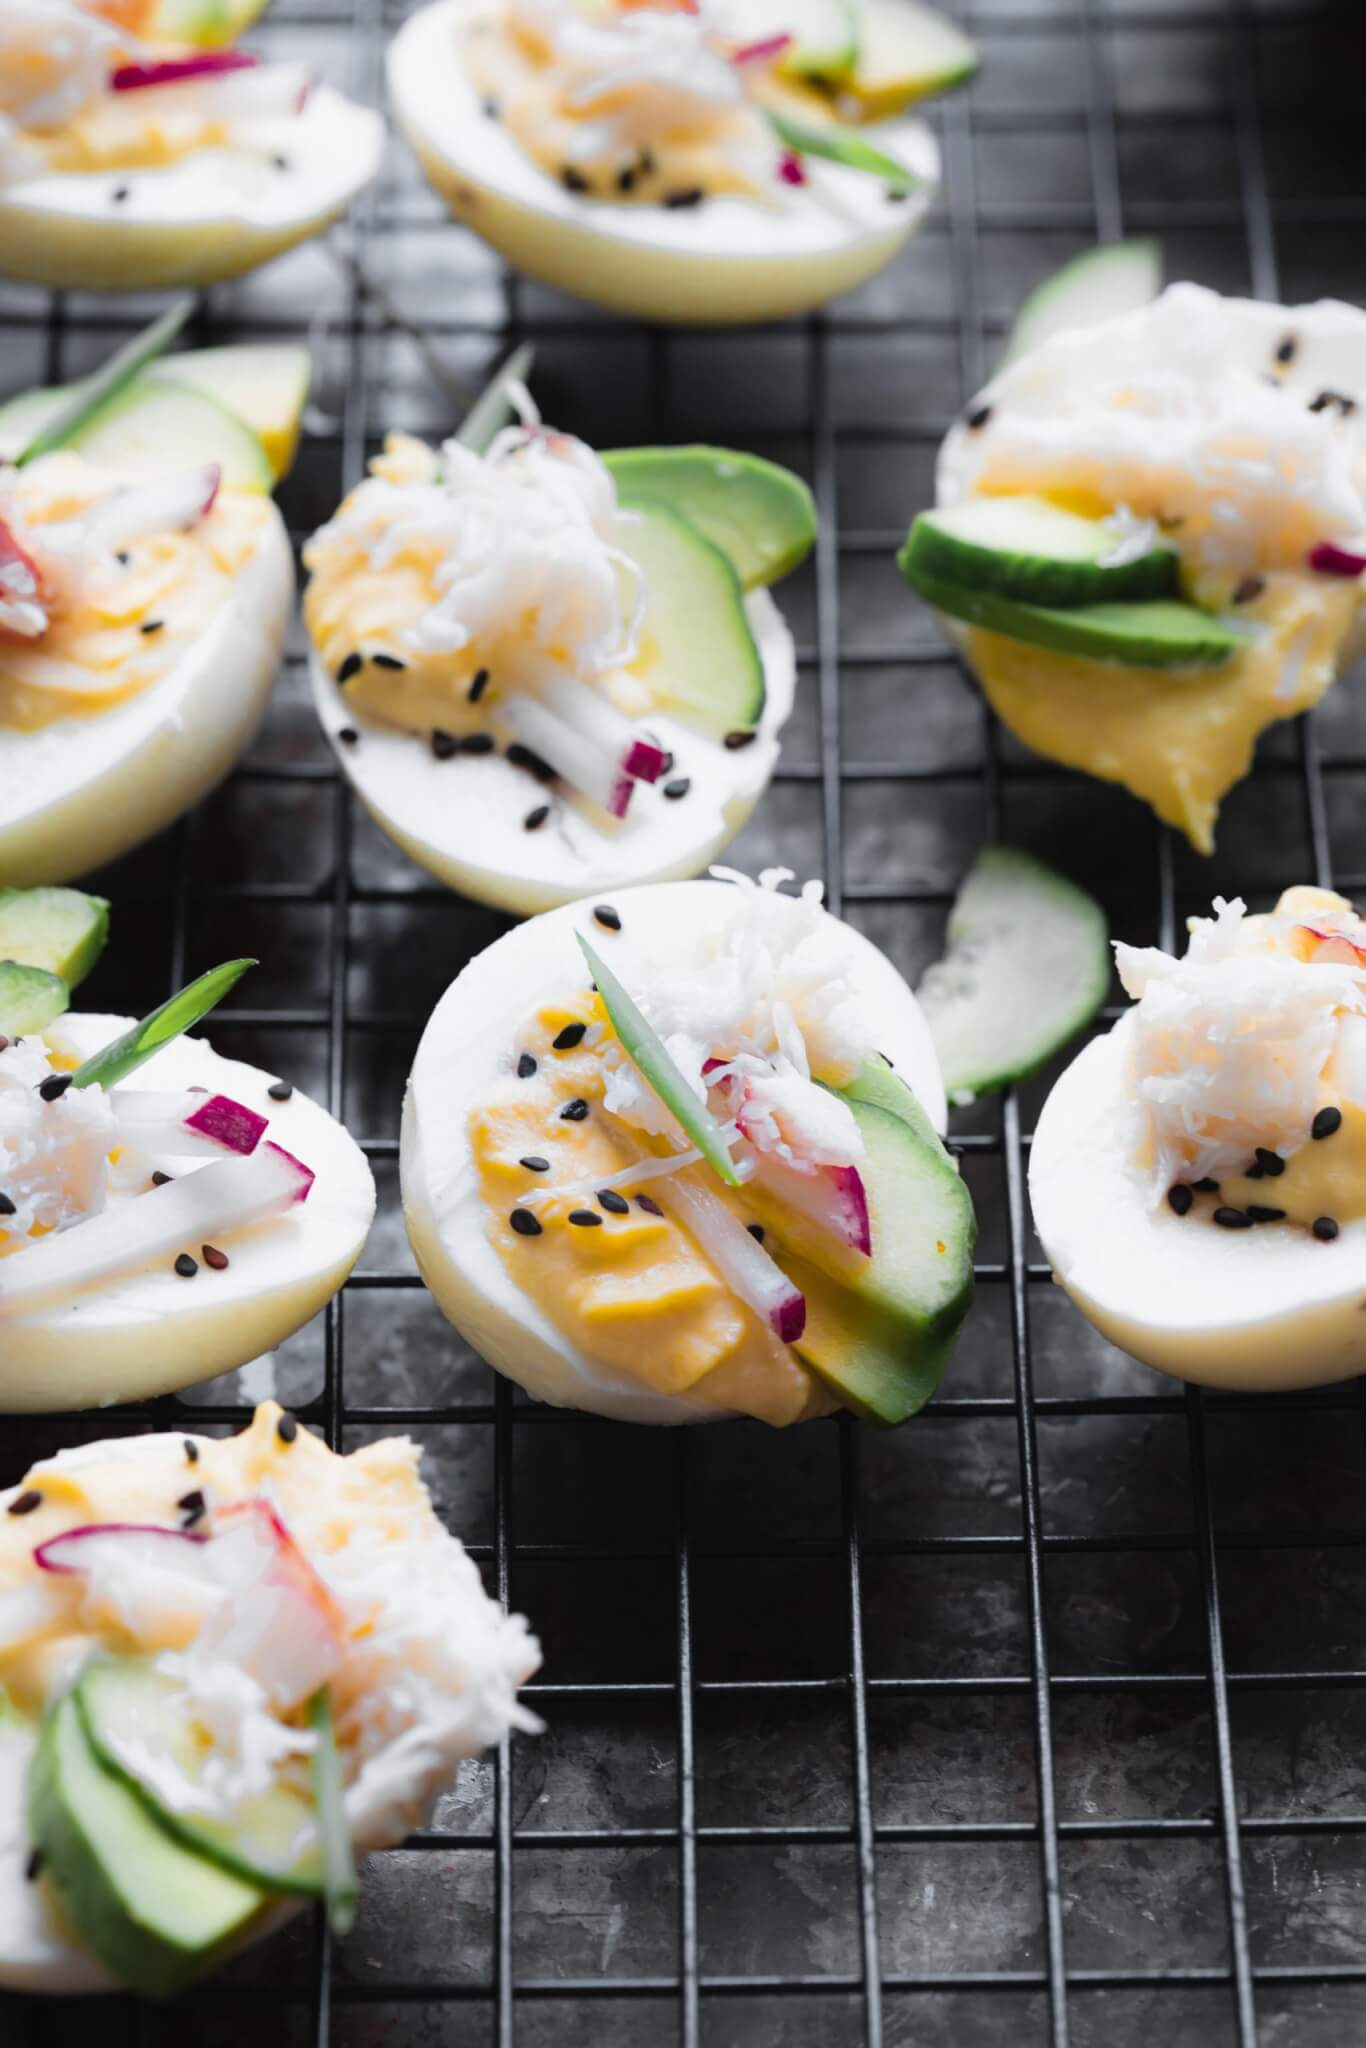 Side view of stuffed crab deviled eggs on dark background topped with sesame seeds, avocado, radishes and cucumber.